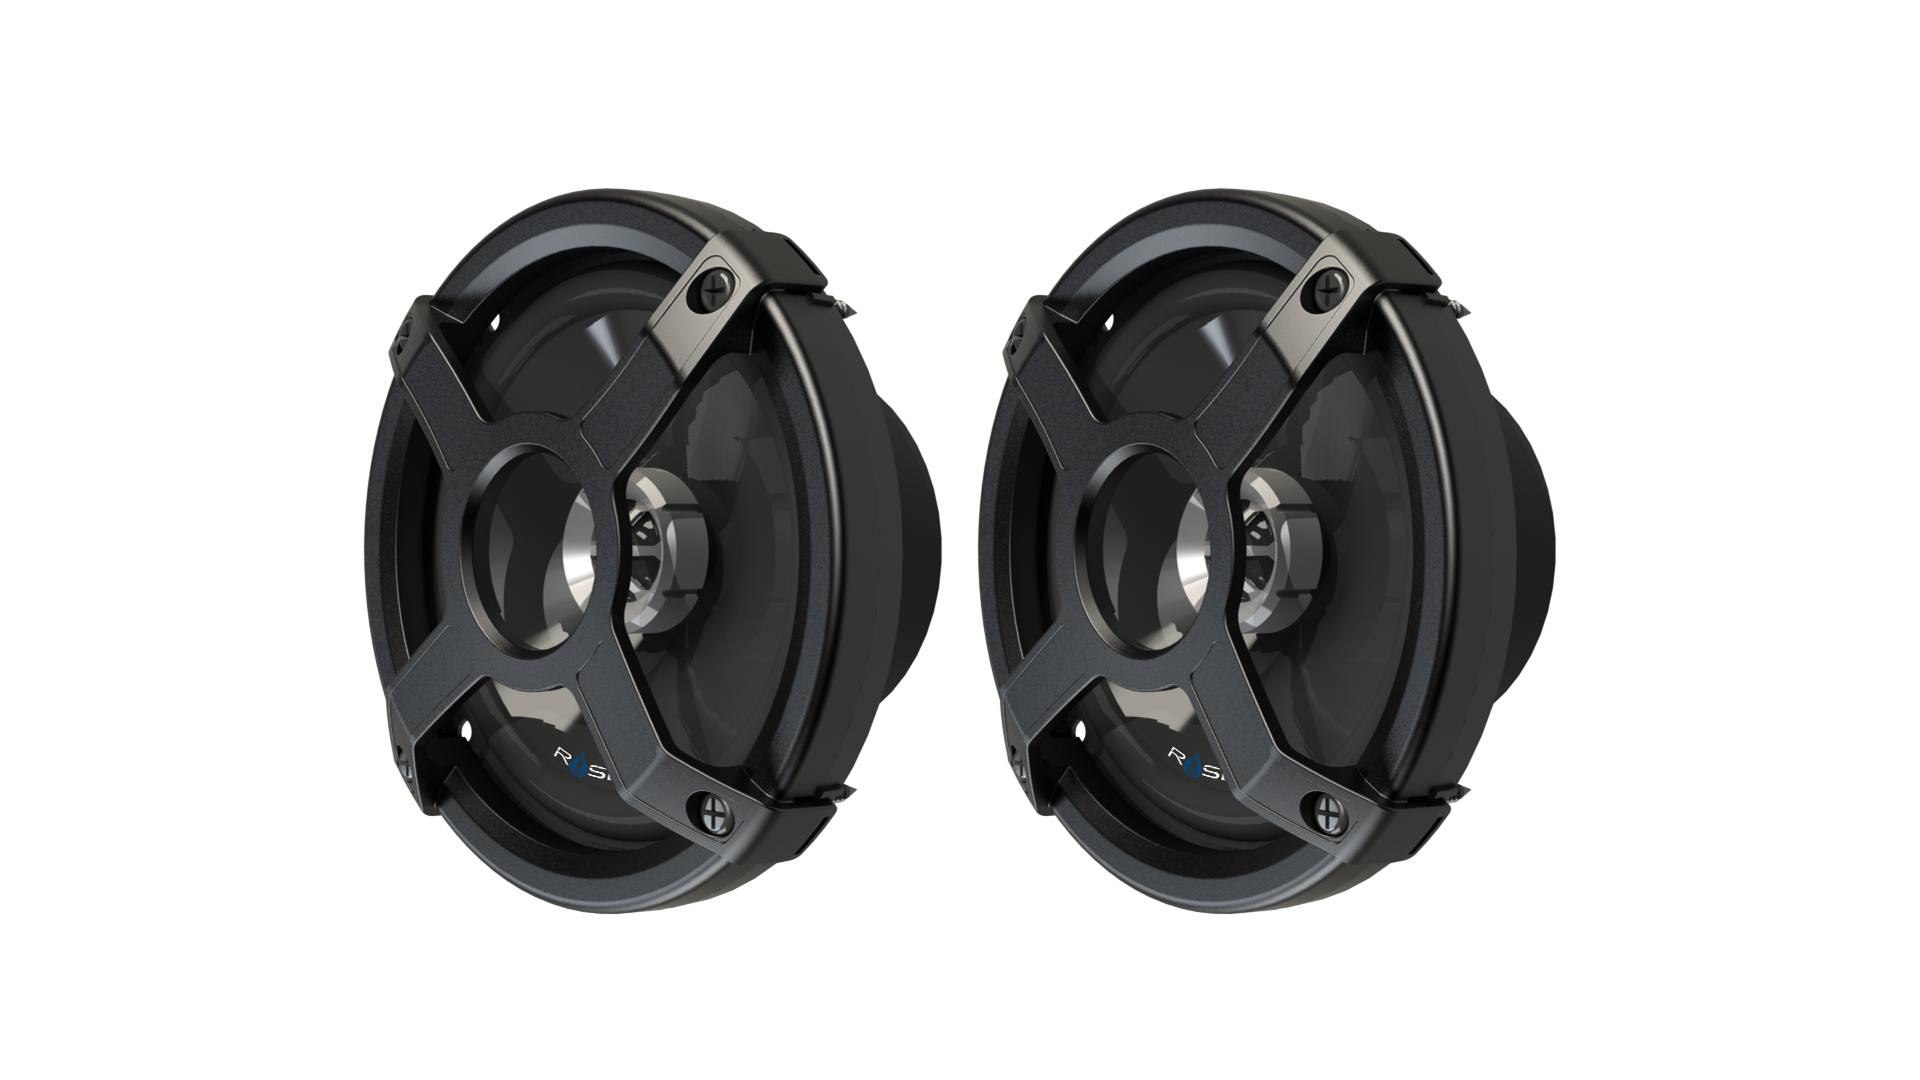 MARINE AUDIO CLASSIC IN-BOAT SPEAKERS - BLACK ROSWELL 2018